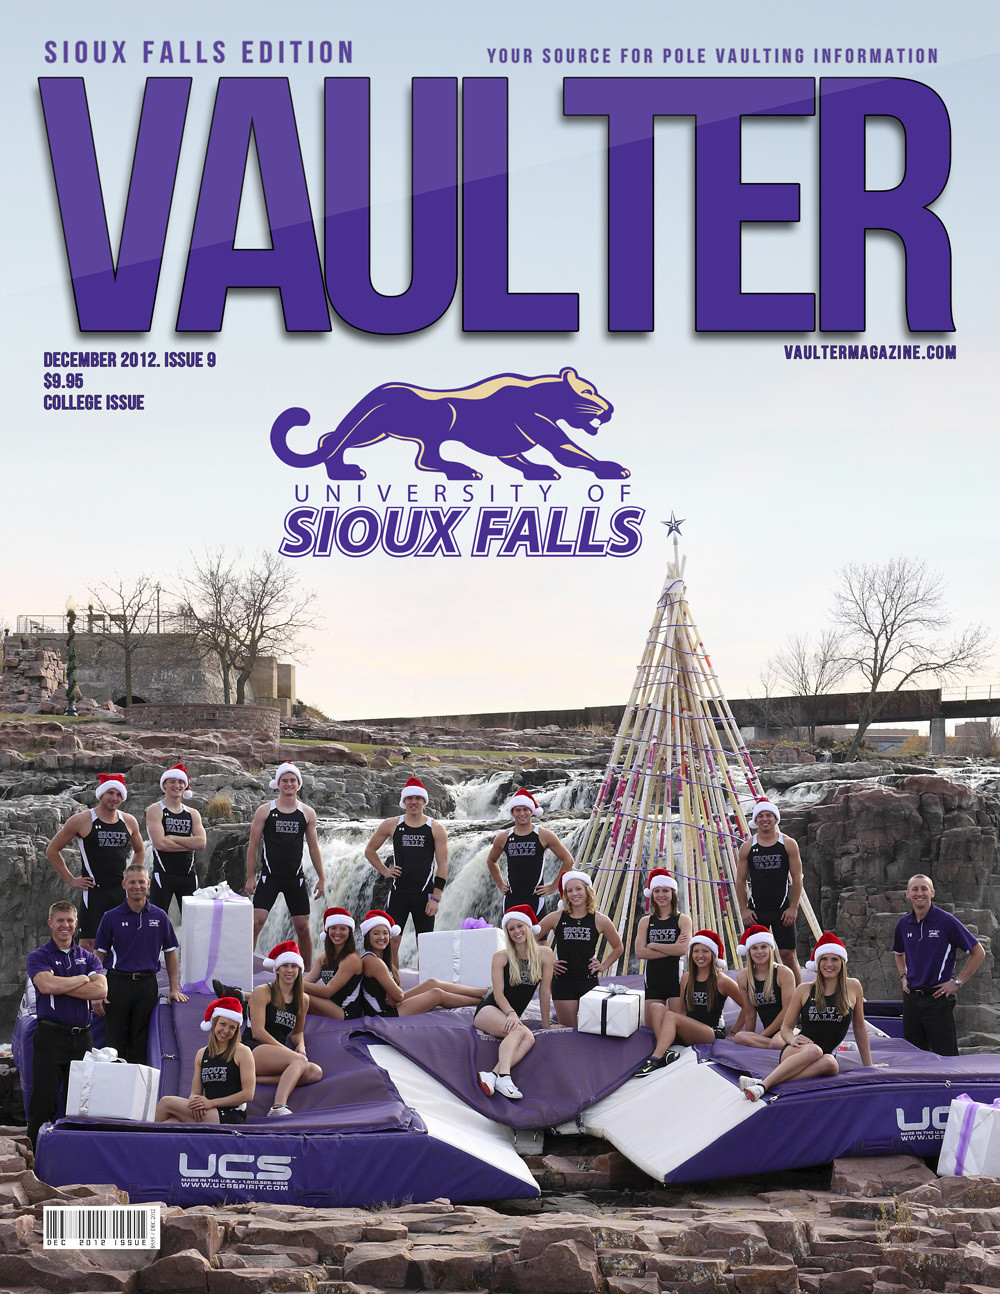 Poster of Sioux Falls University Cover of VAULTER